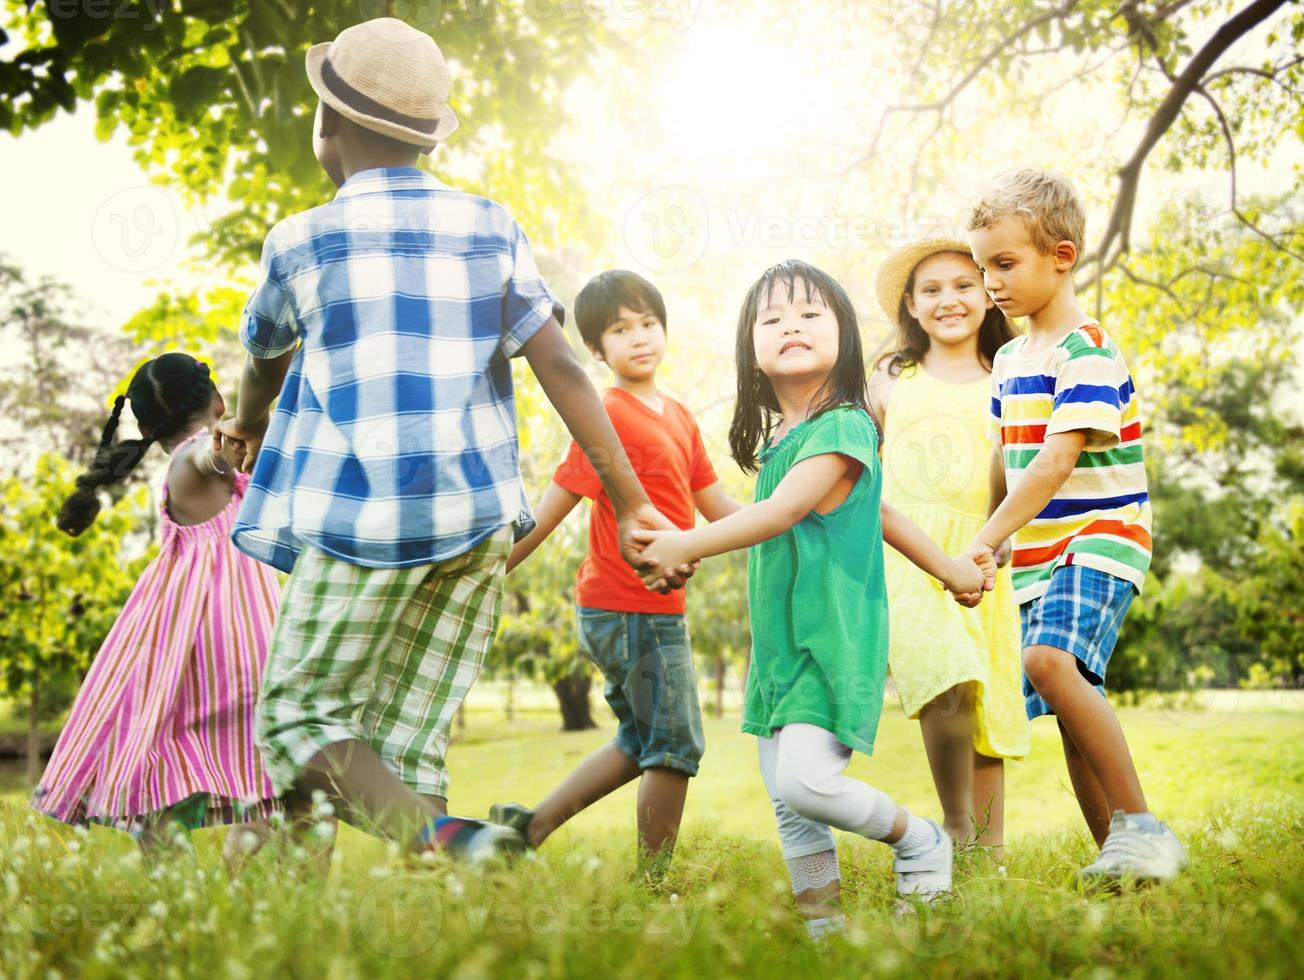 Children Friendship Togetherness Game Happiness Concept photo